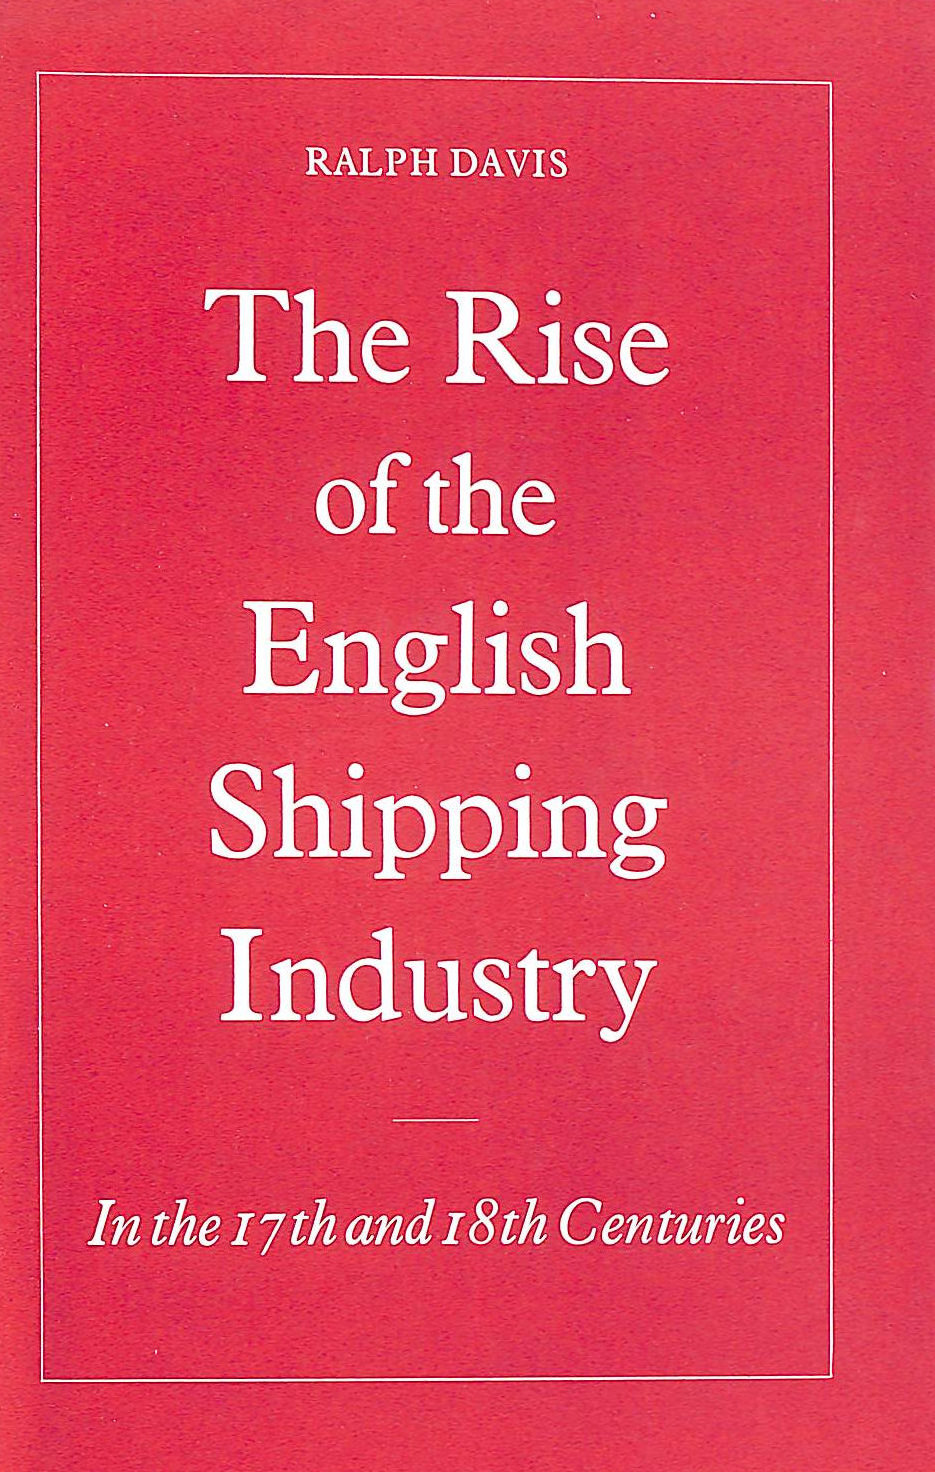 Image for Rise Of The English Shipping Industry In The 17Th And 18Th Centuries